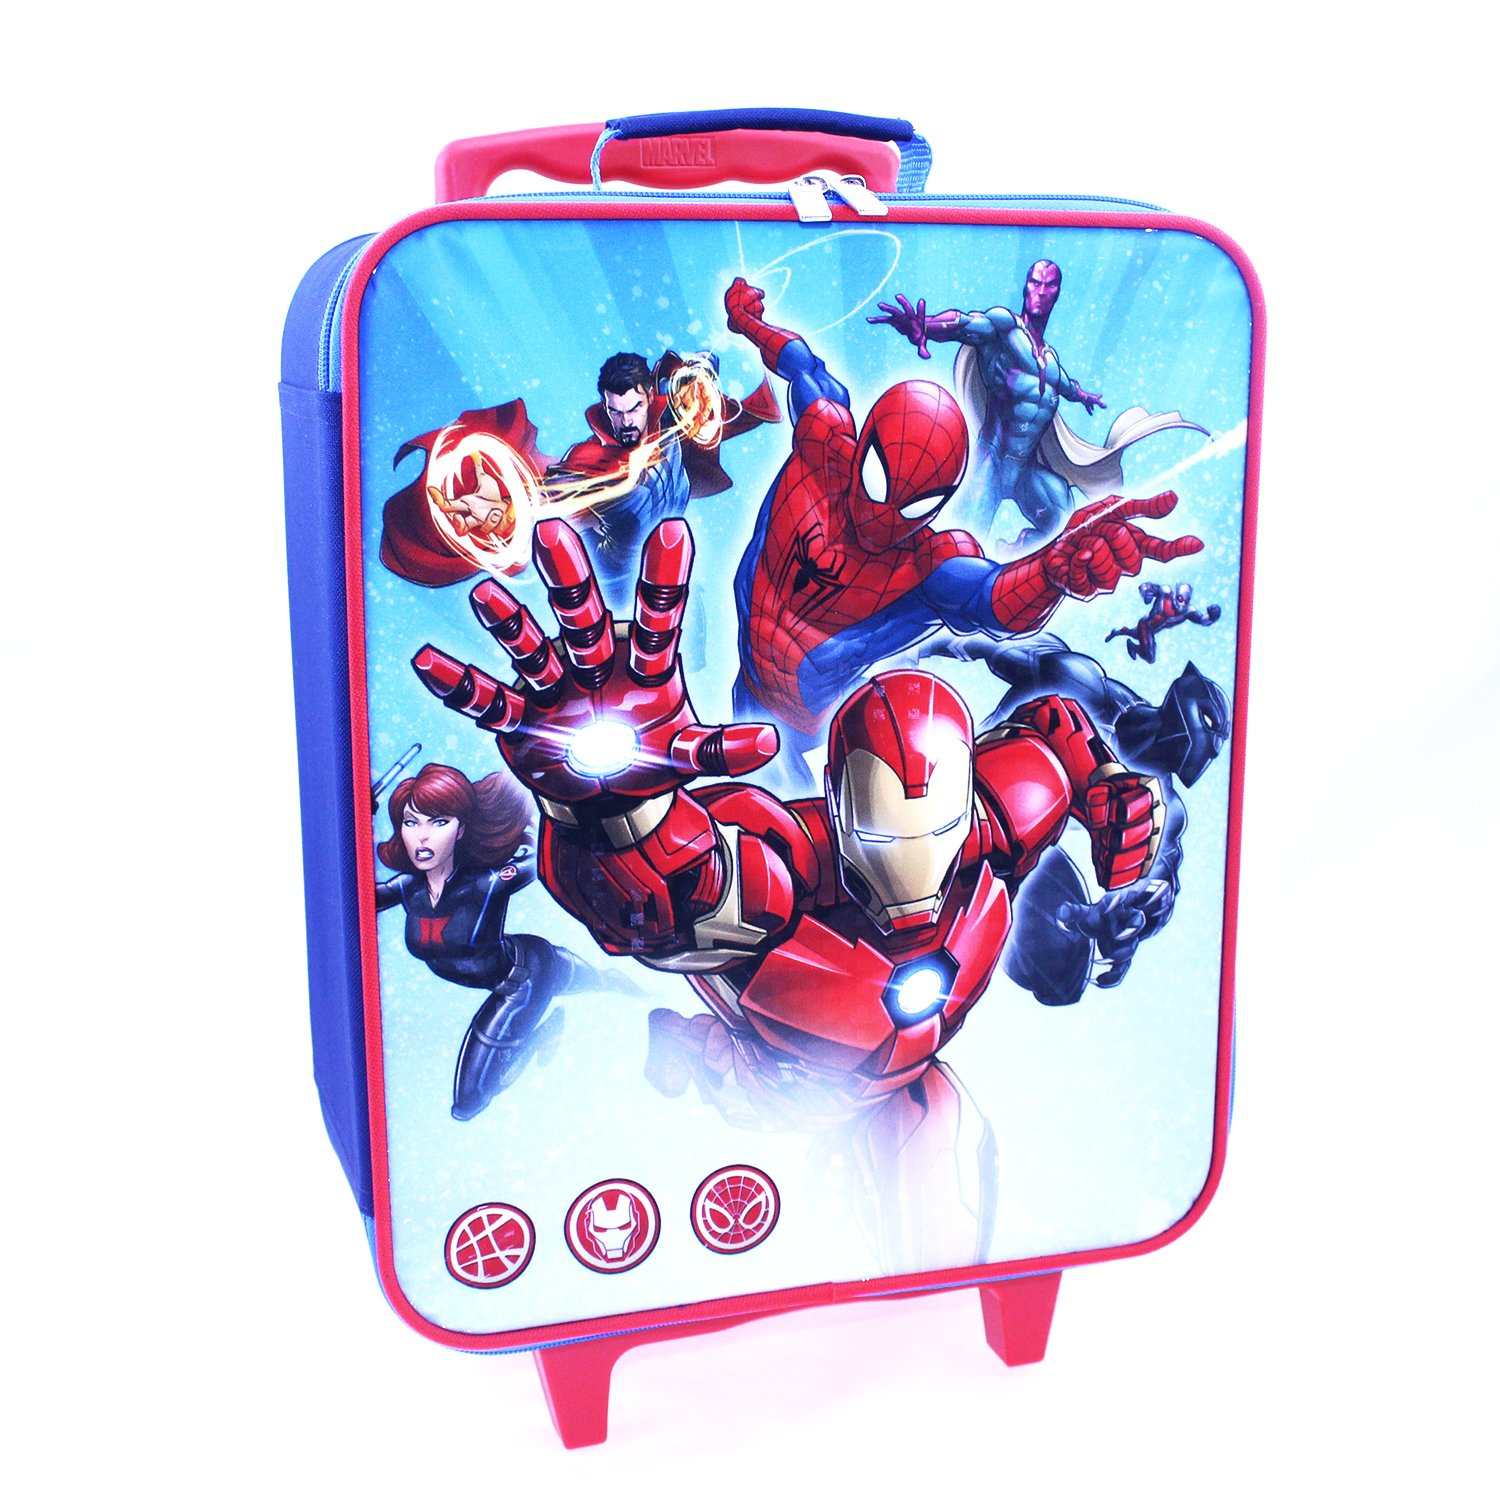 Marvel Boys' Avengers Pilot Case, Blue MV29832-SC-BL00